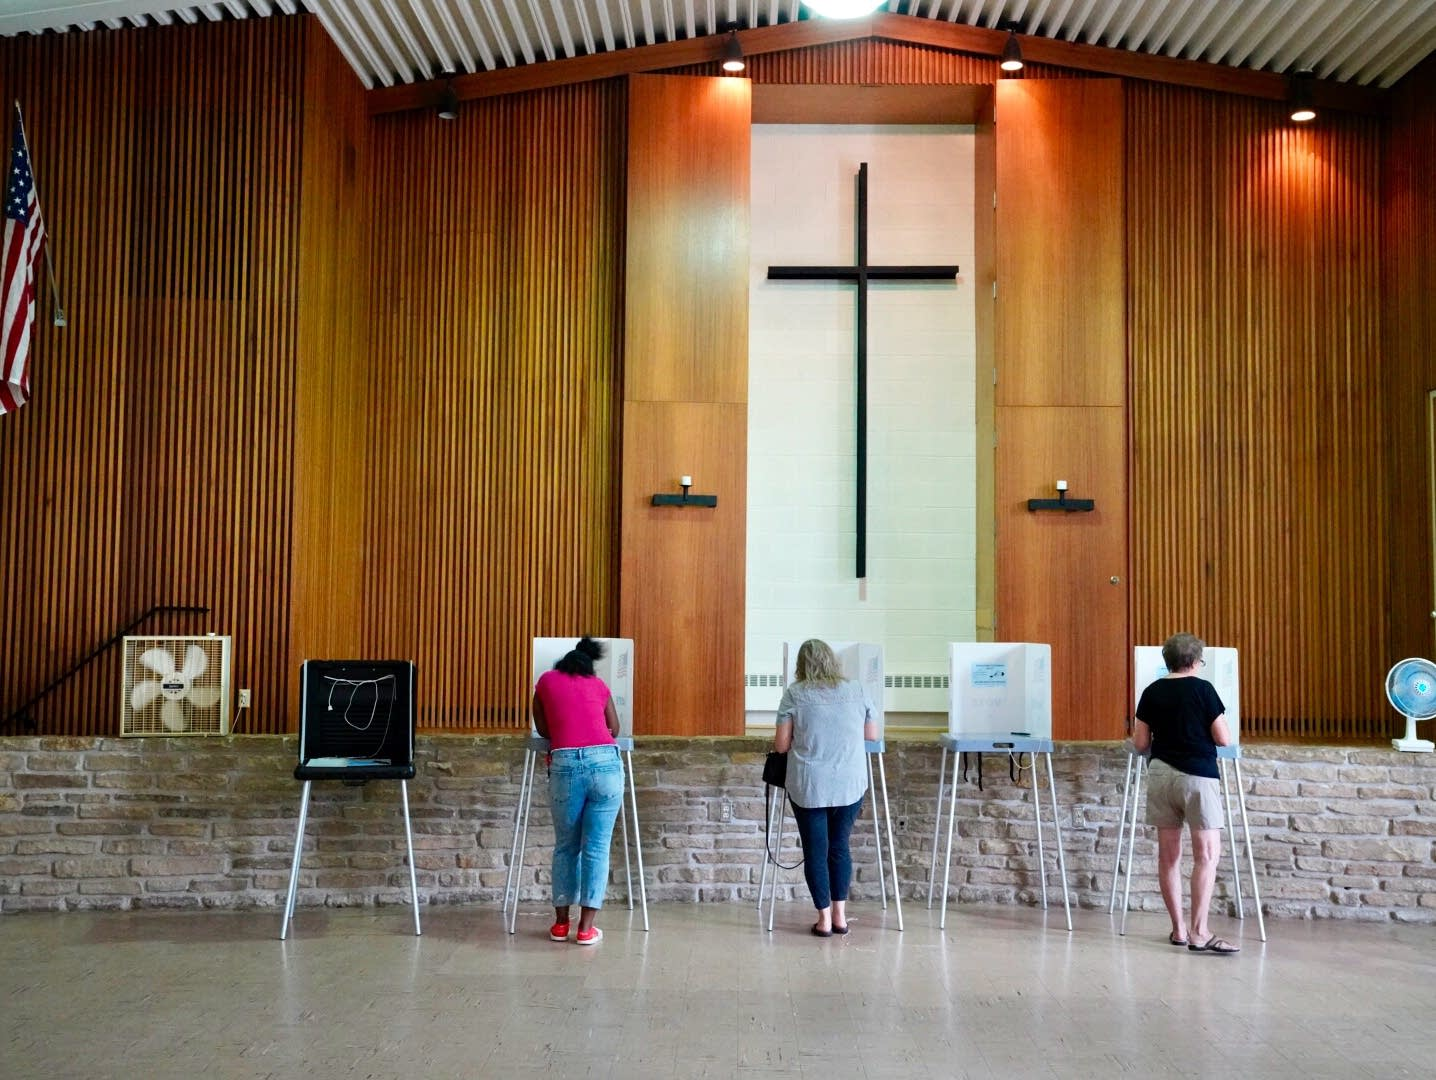 People vote at the Lutheran Memorial Church in South St. Paul.